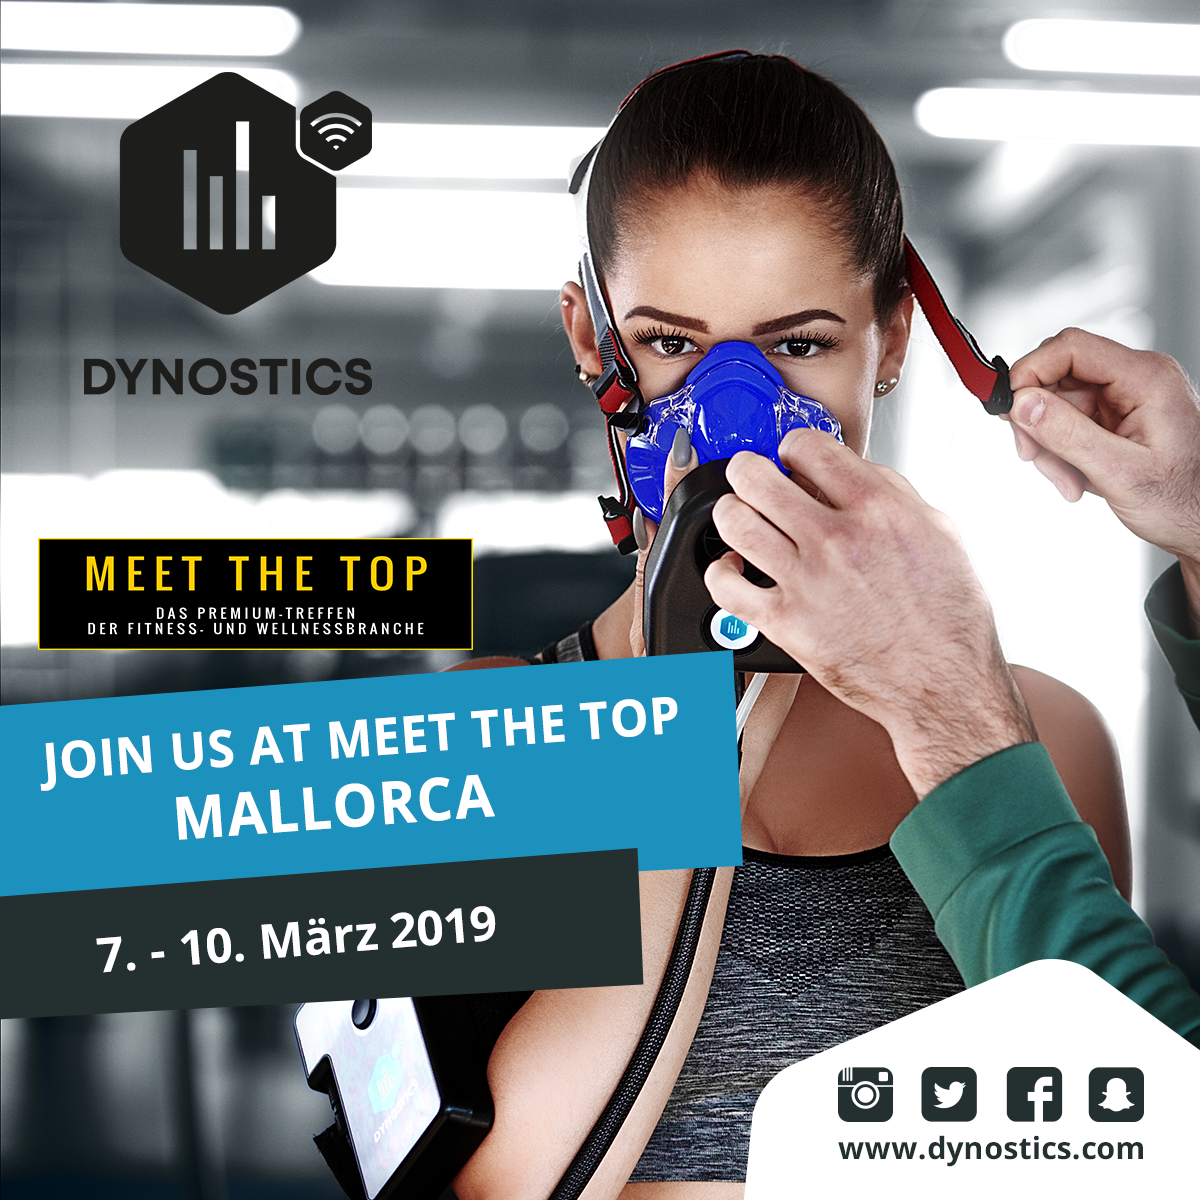 DYNOSTICS bei Meet the Top 2019